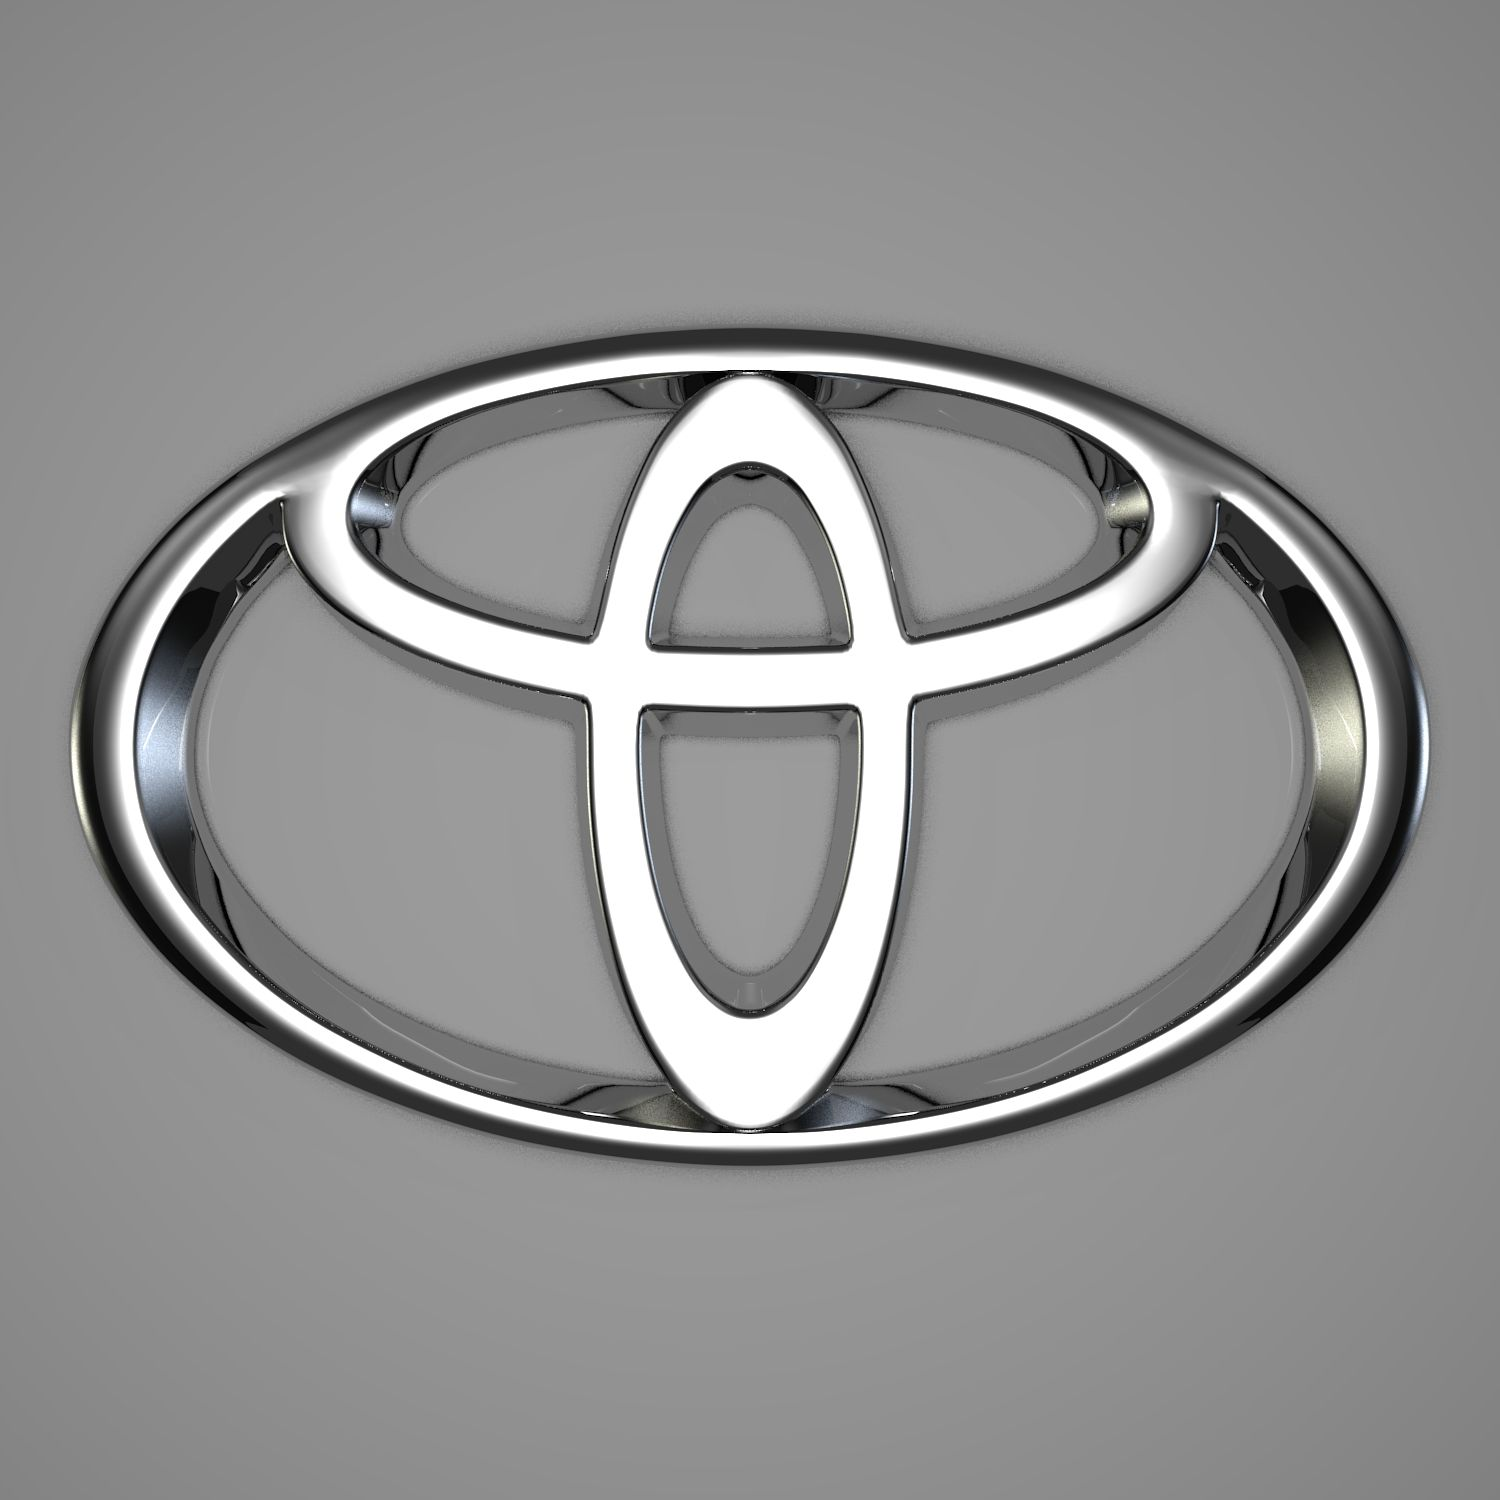 Black and Silver Car Logo - Toyota Logo, Toyota Car Symbol Meaning and History | Car Brand Names.com